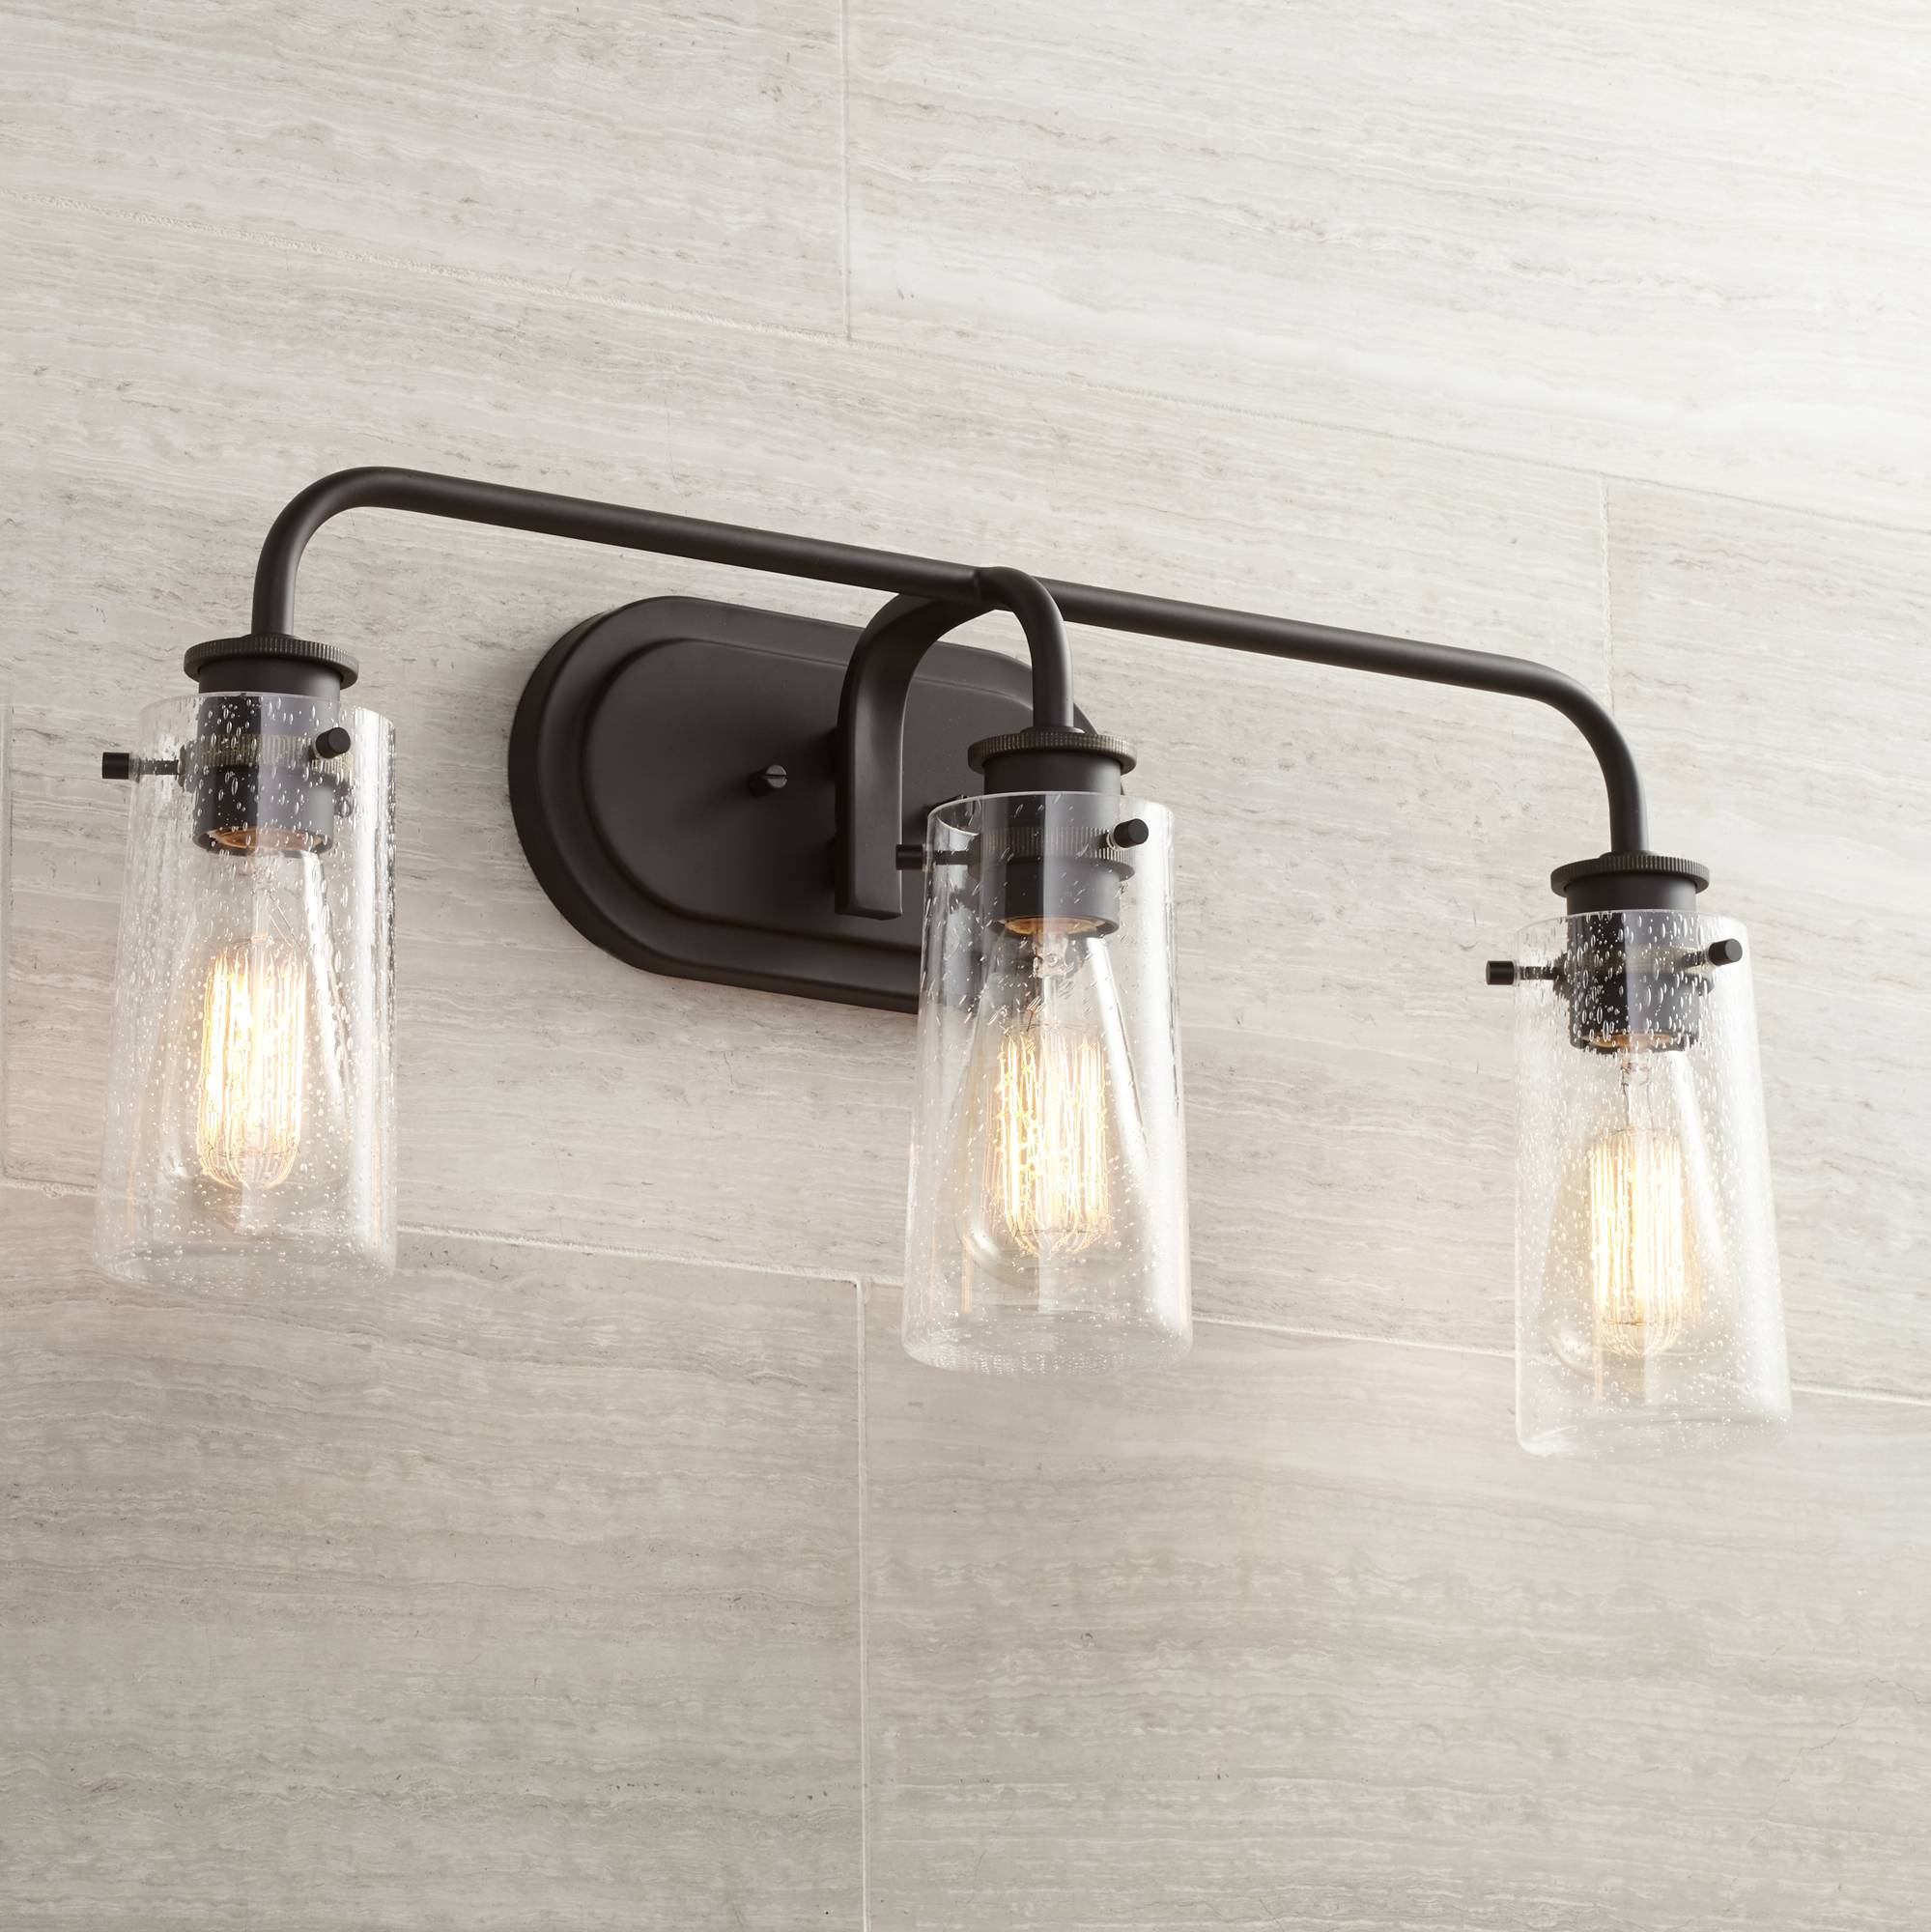 Kichler braelyn 24 wide olde bronze 3 light bath light 6r113